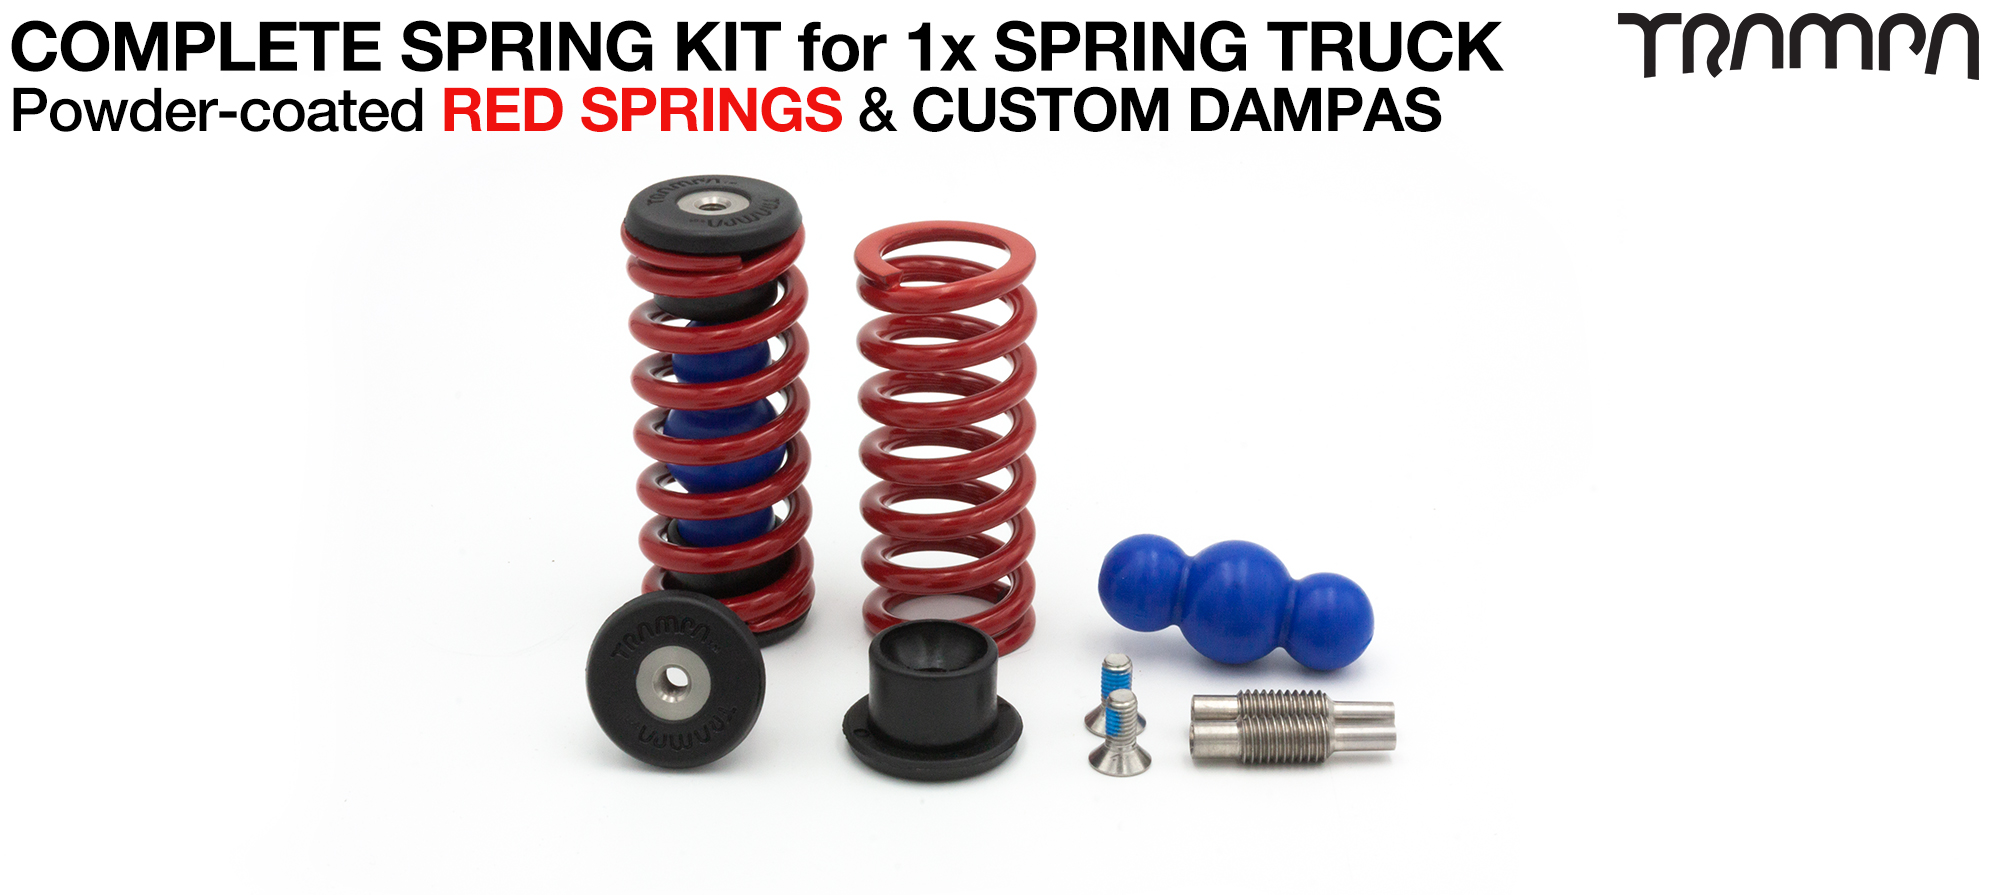 Spring kit Complete for 1x Truck - 2x Spring 2x Dampa 4x Spring Retainers 2x Spring Adjuster & 2 M5x12mm Countersunk Bolt  RED Springs